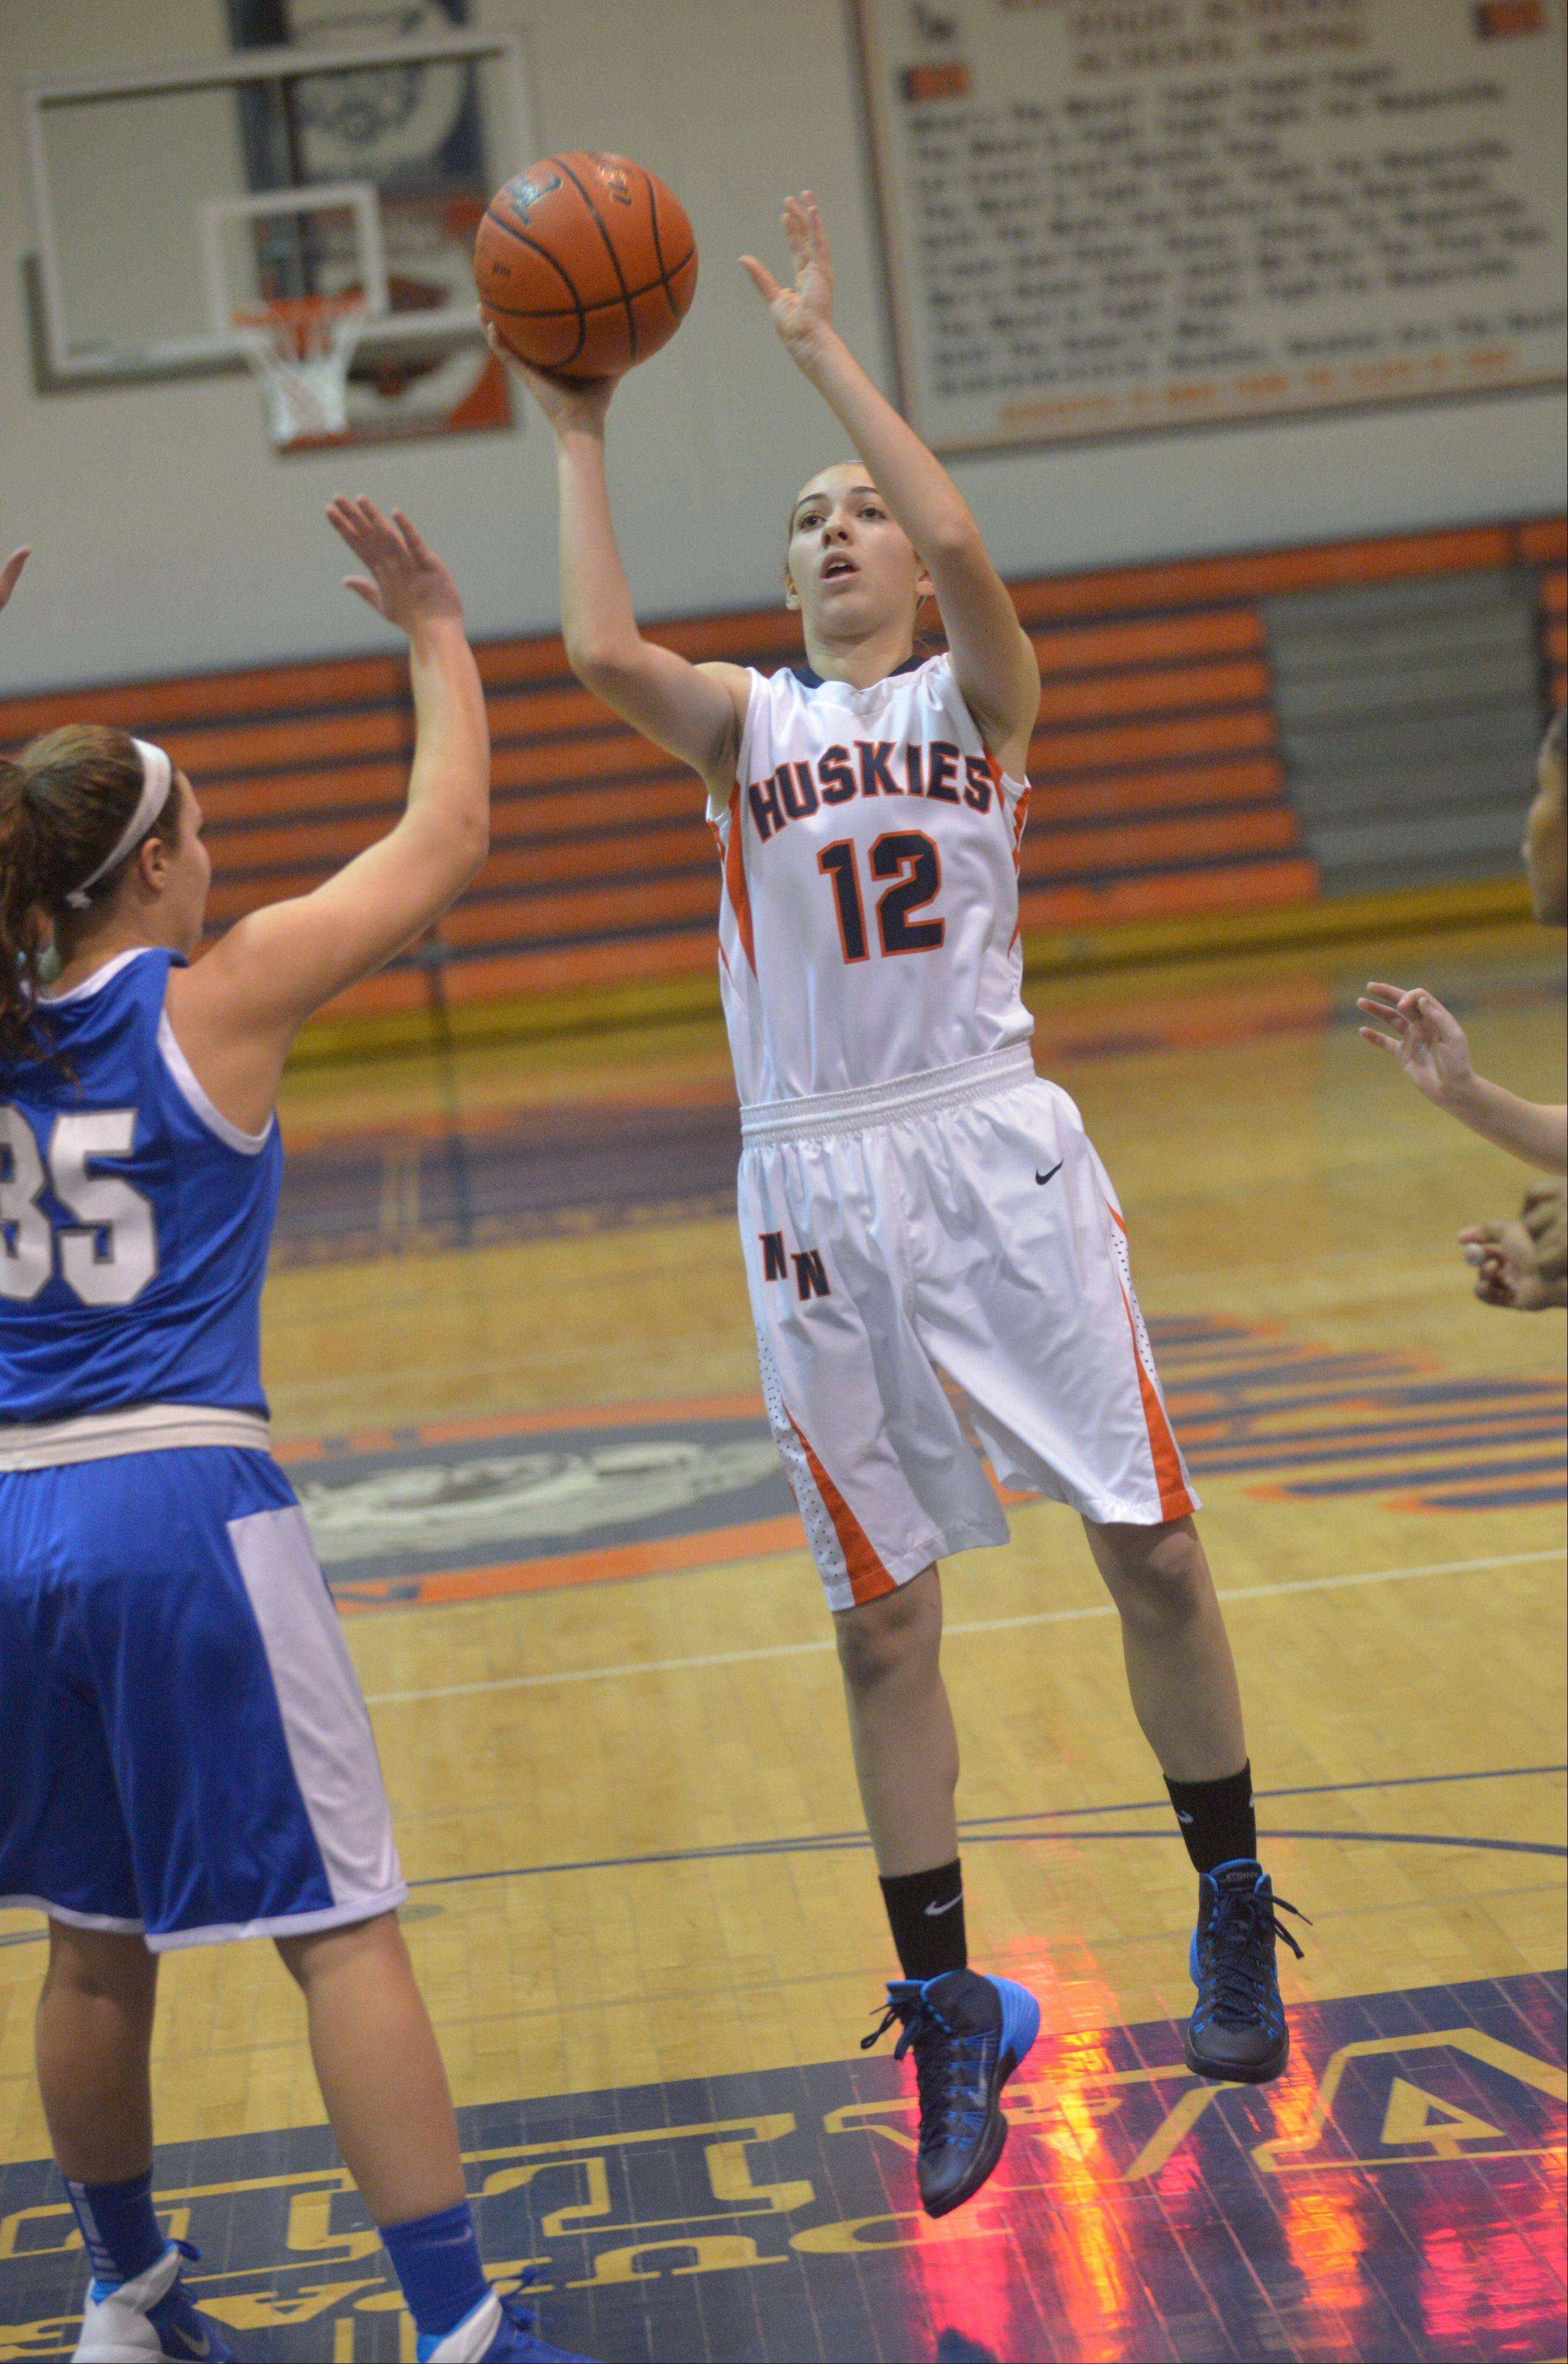 Photos from the Wheaton North at Naperville North girls basketball game on Tuesday, Dec. 3.